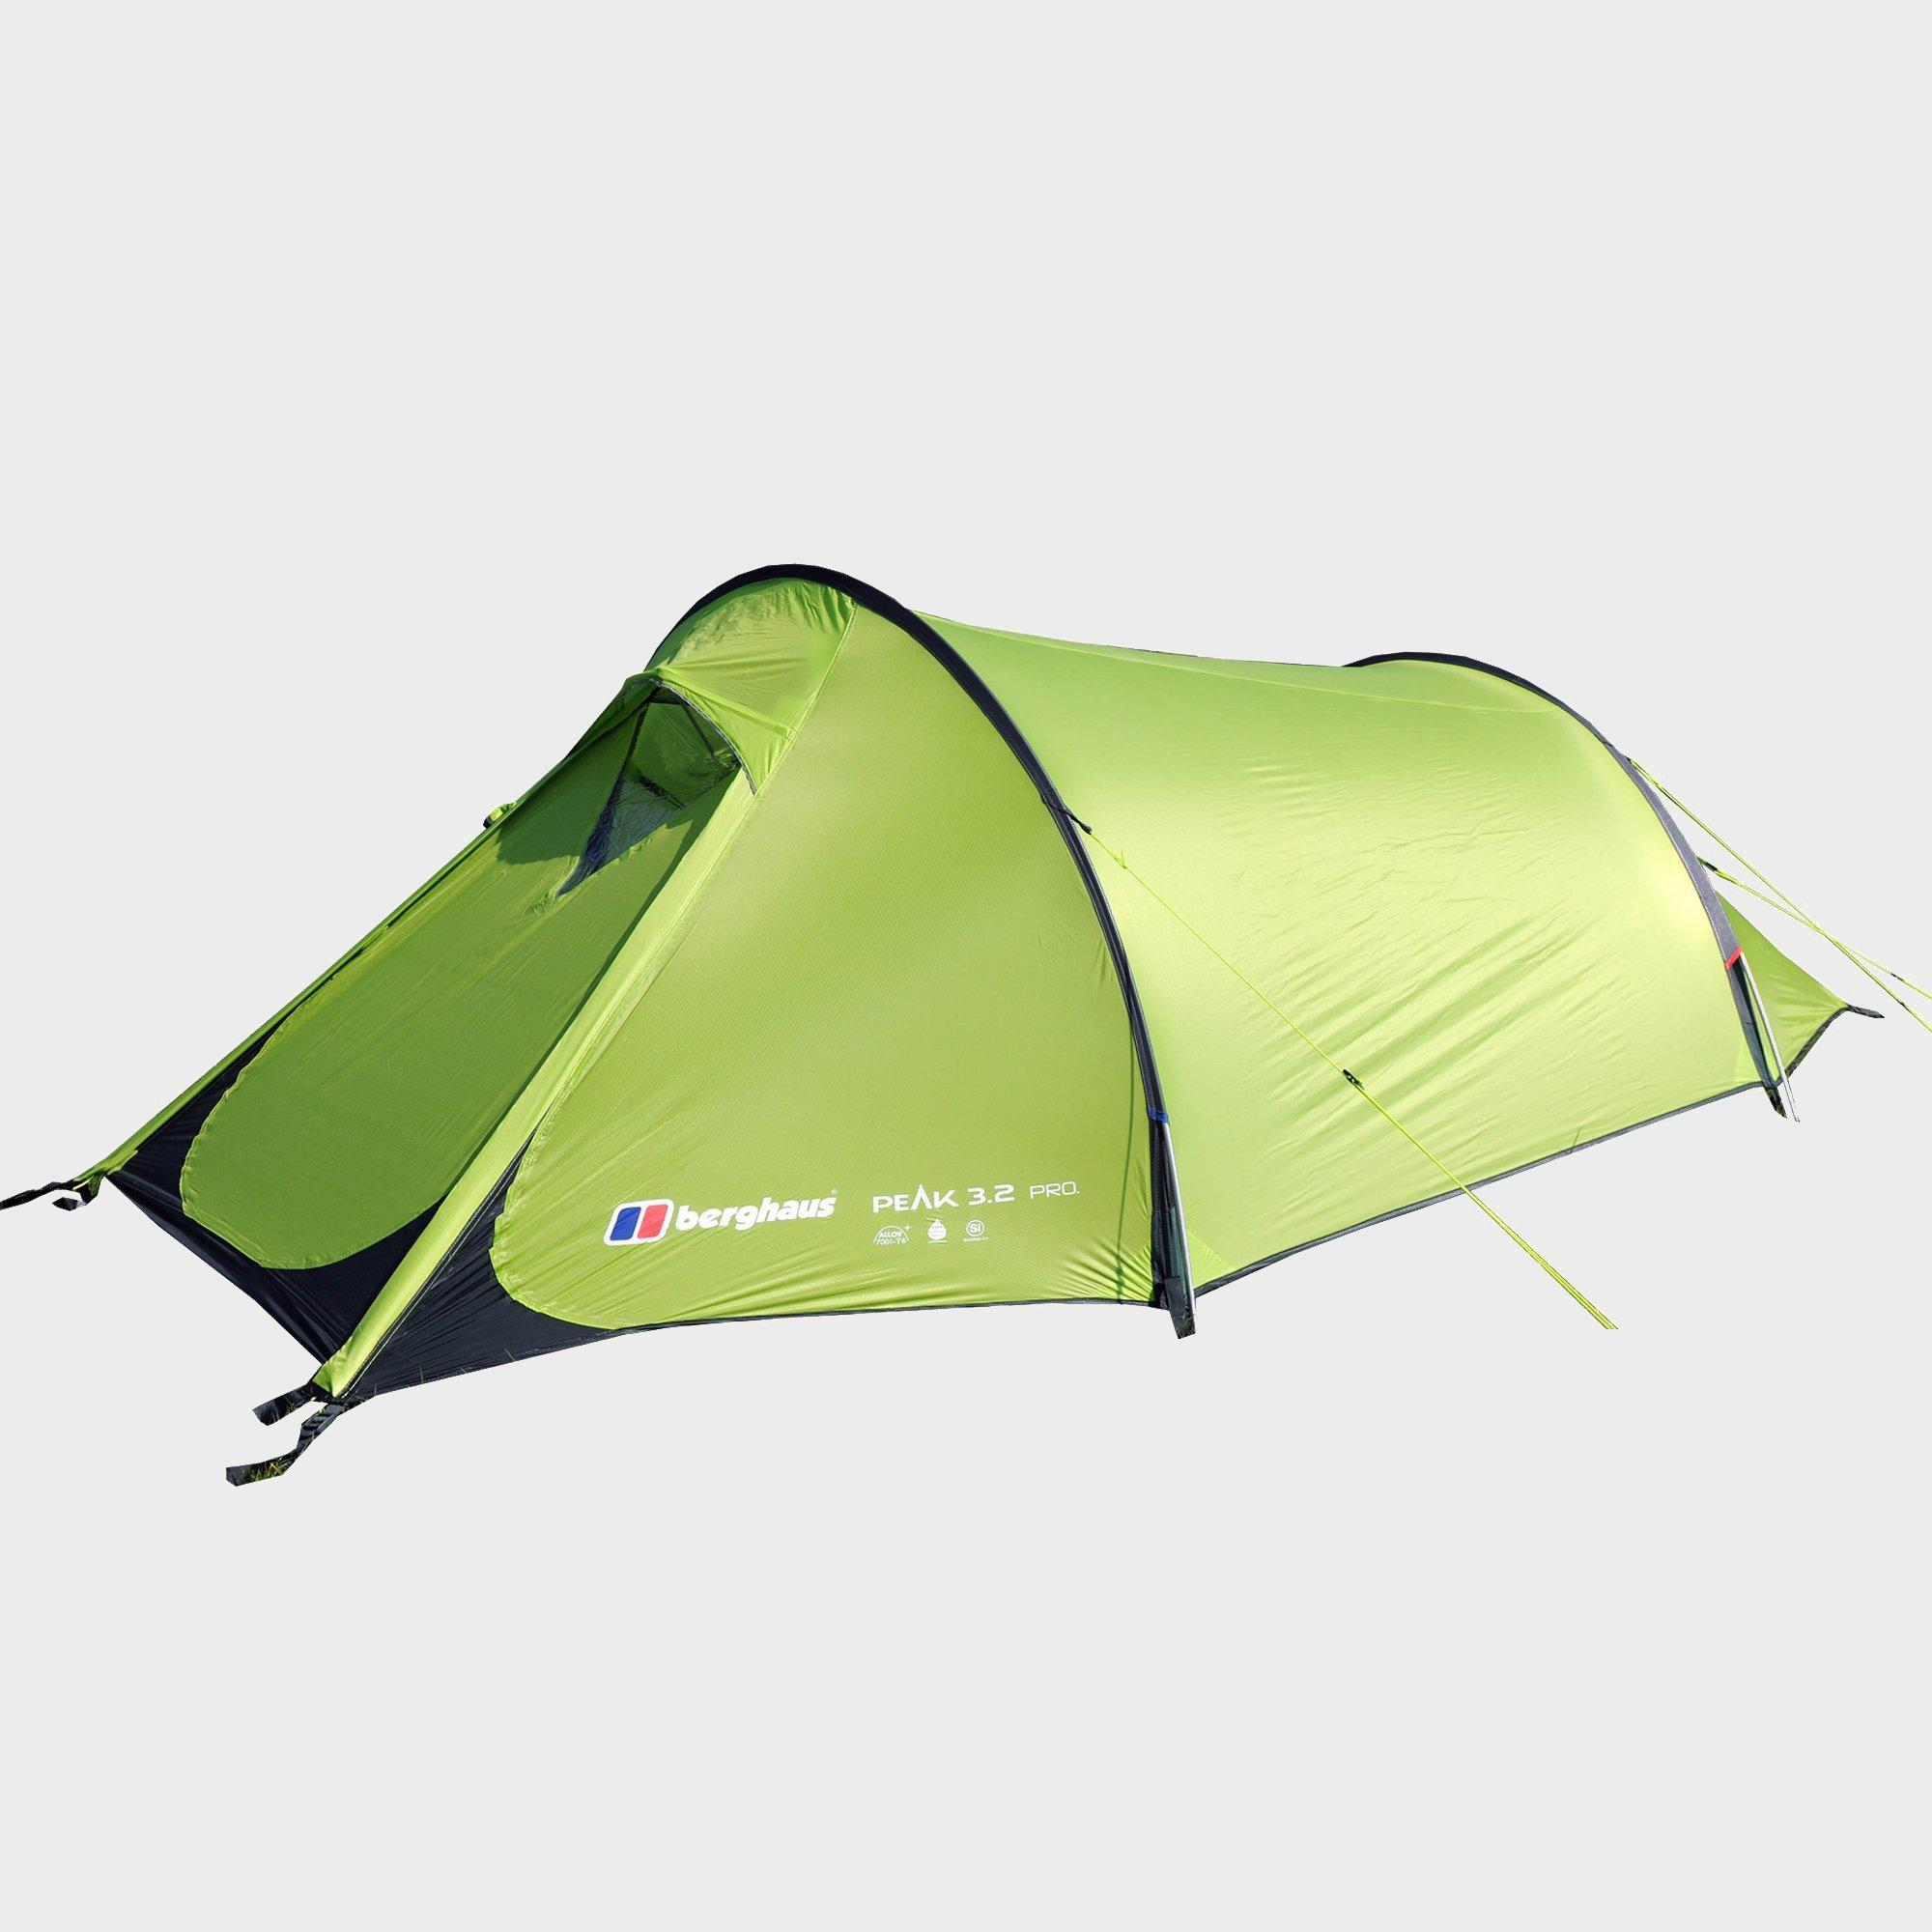 Peak 3.2 Pro Tent  sc 1 st  Millets & 2 Man Tents u0026 2 Person Tents | Festival u0026 Pop Up Tents | Millets